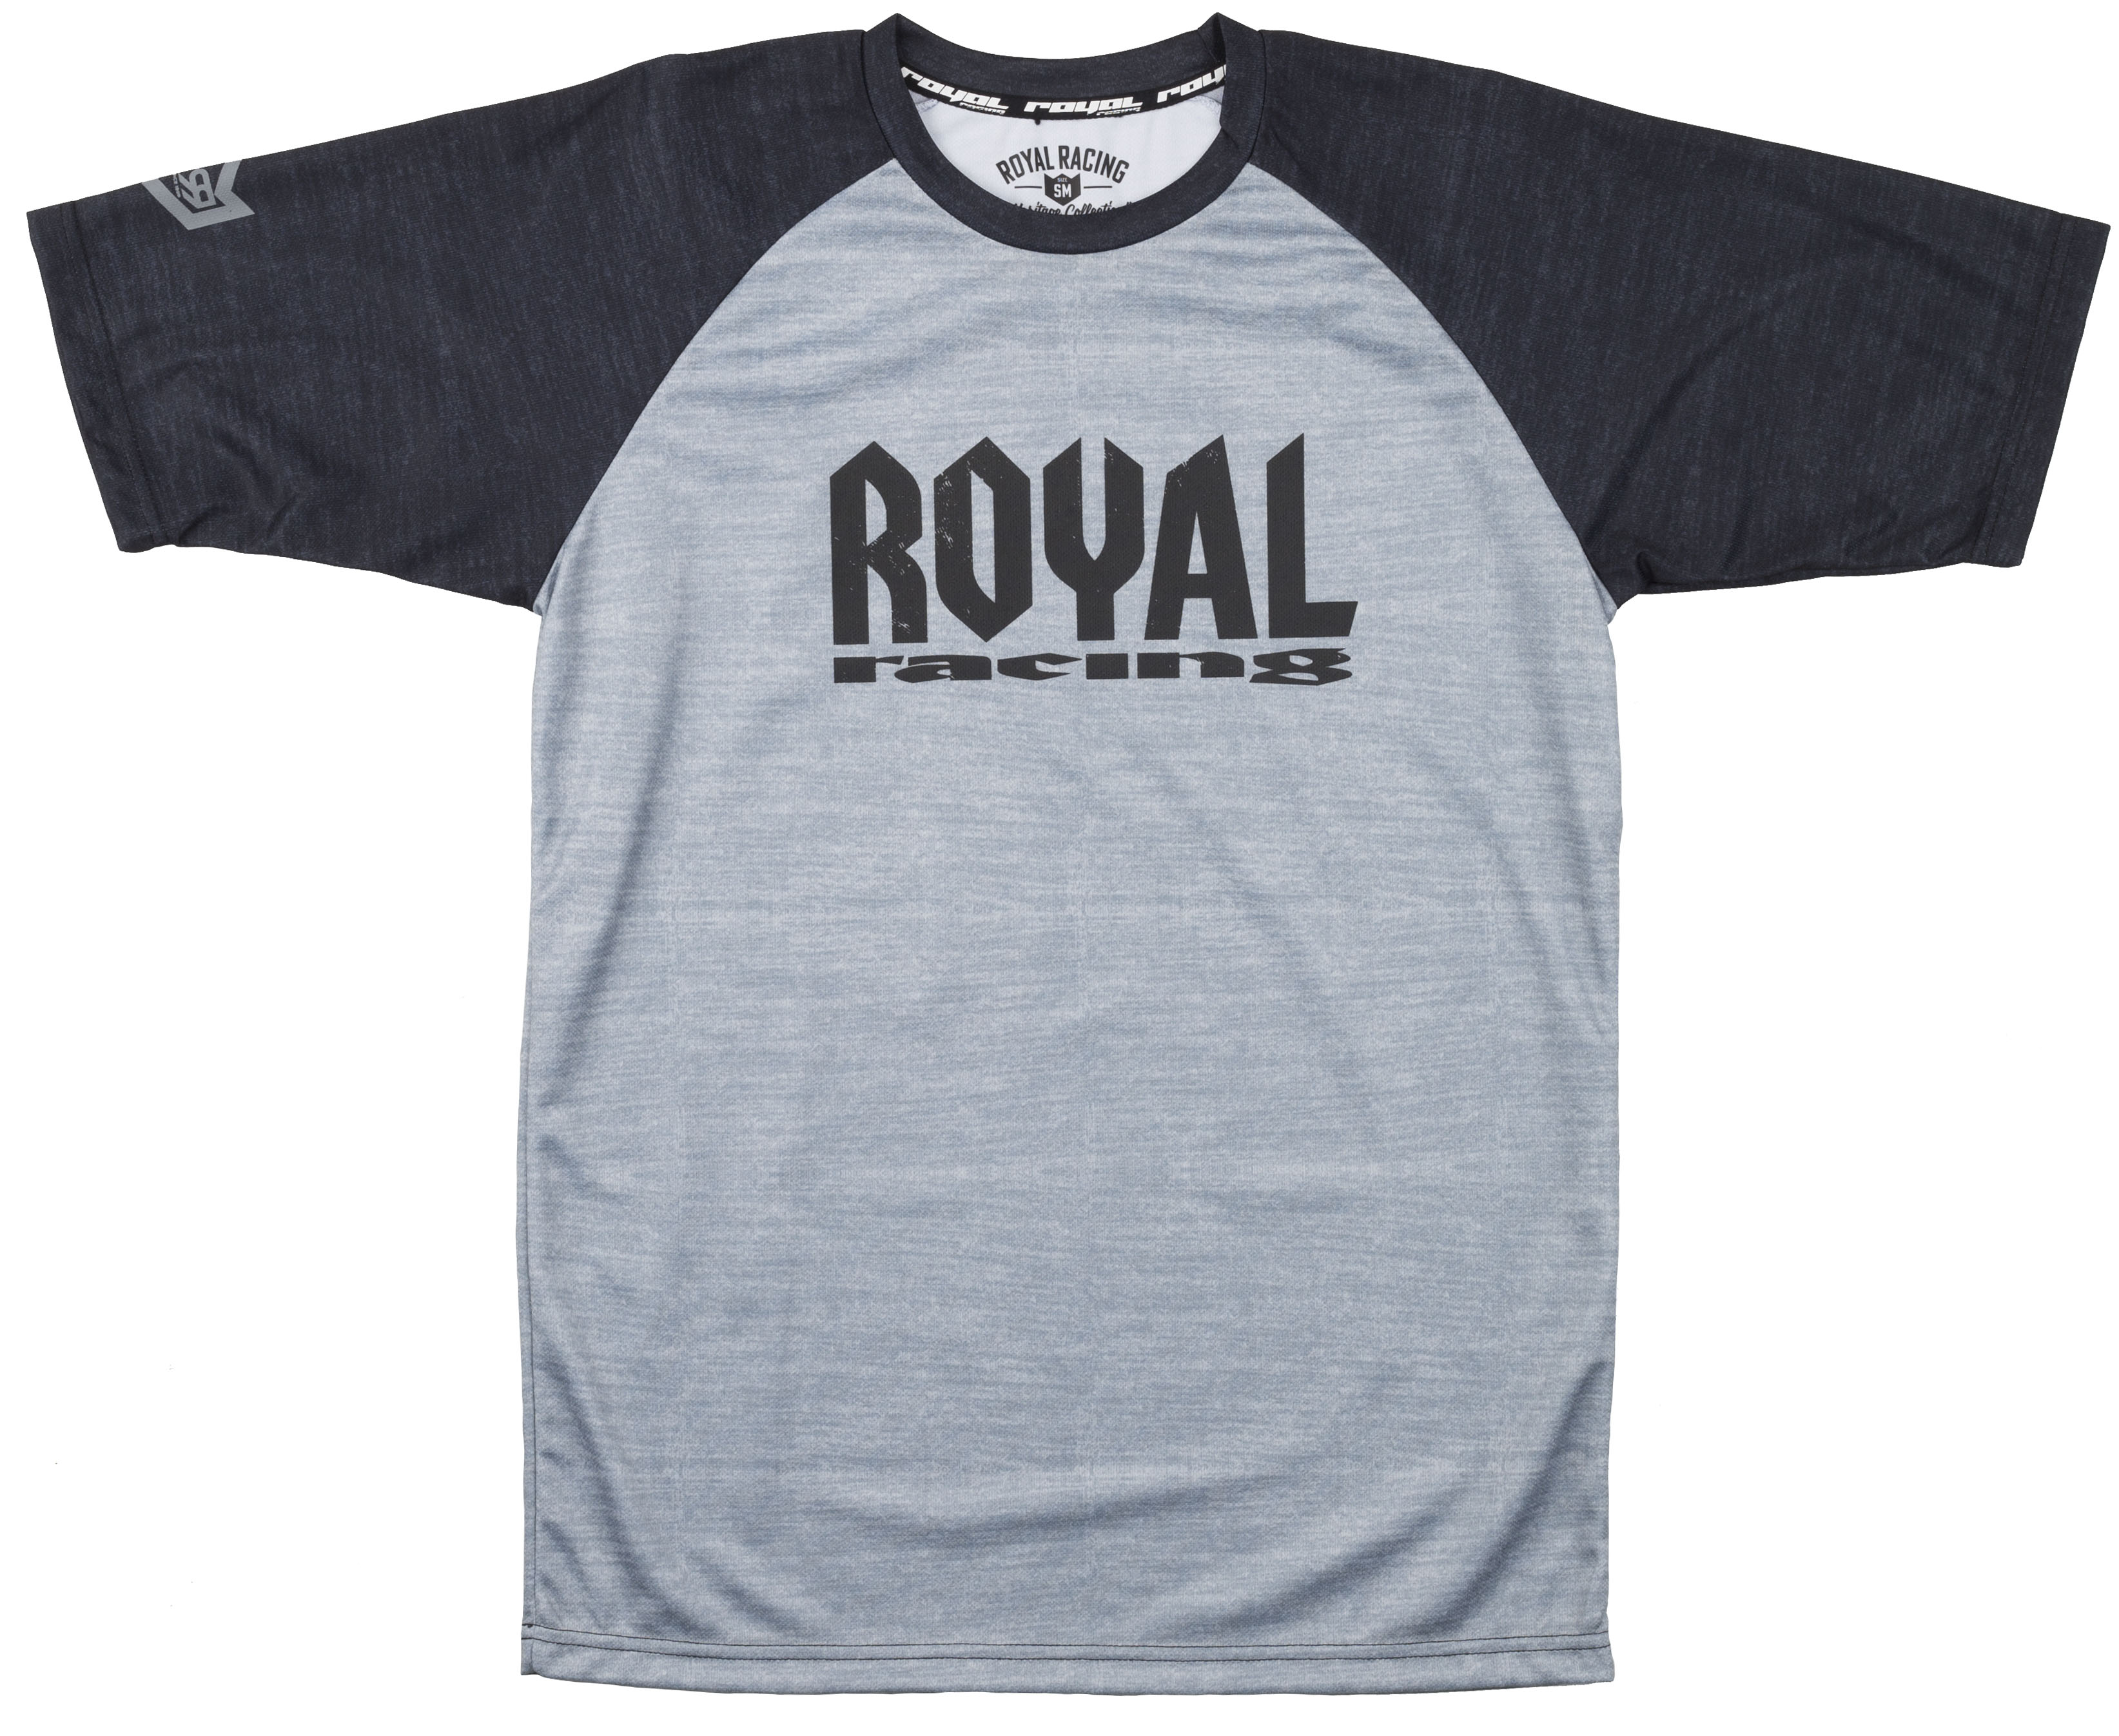 Royal Heritage SS Jersey  54c9be535